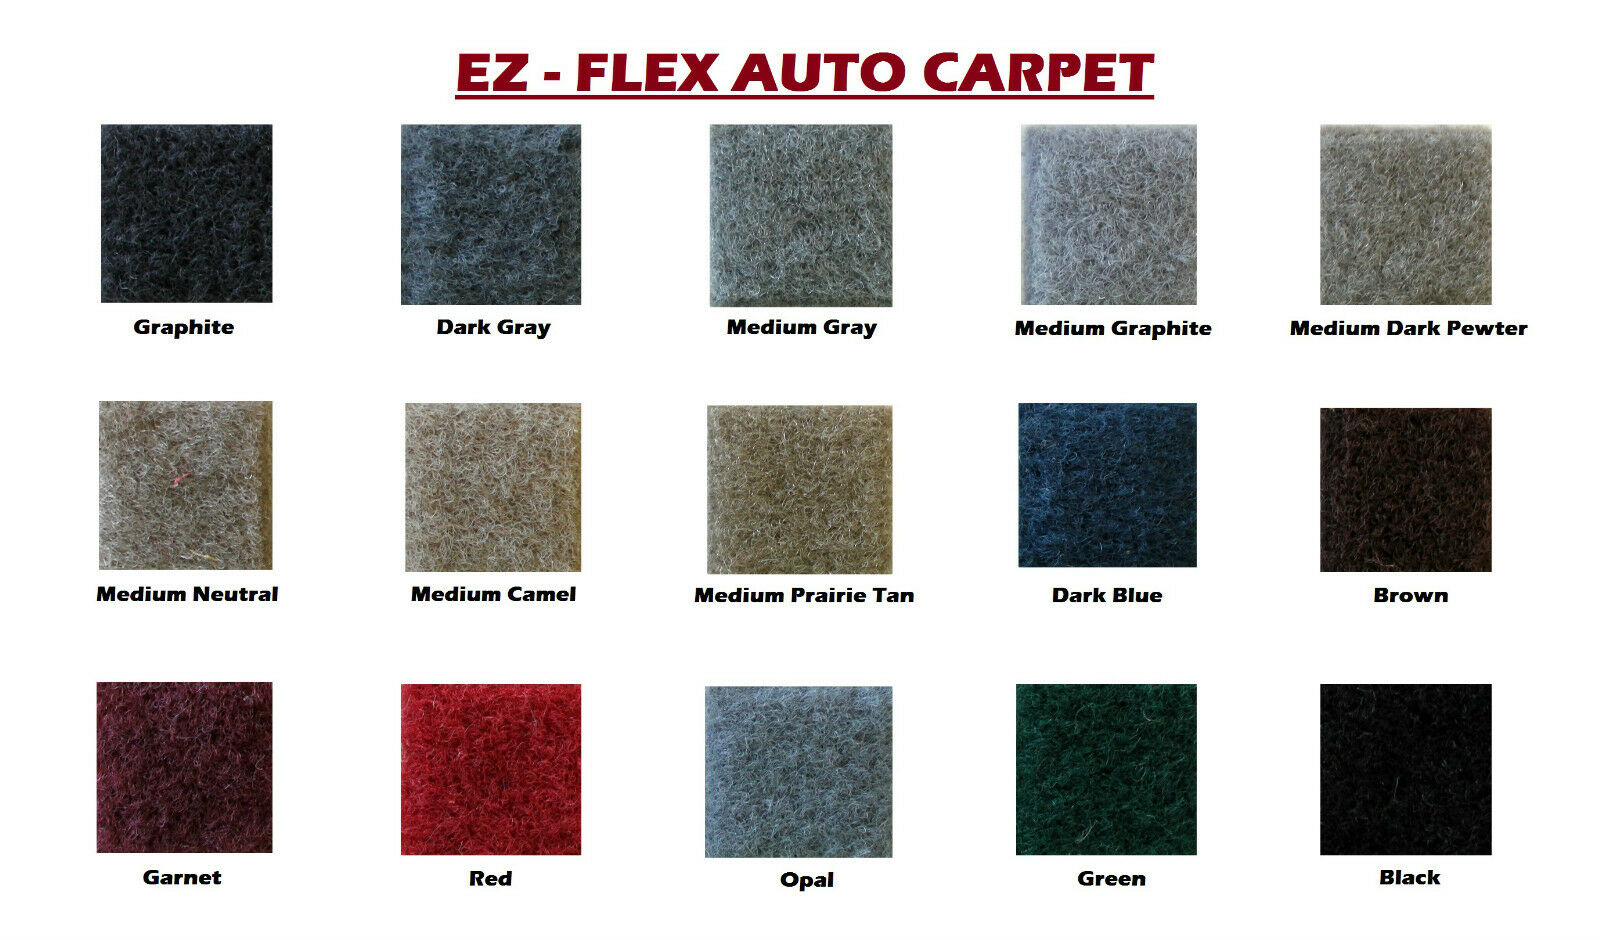 EZ-Flex Automotive Carpet 80